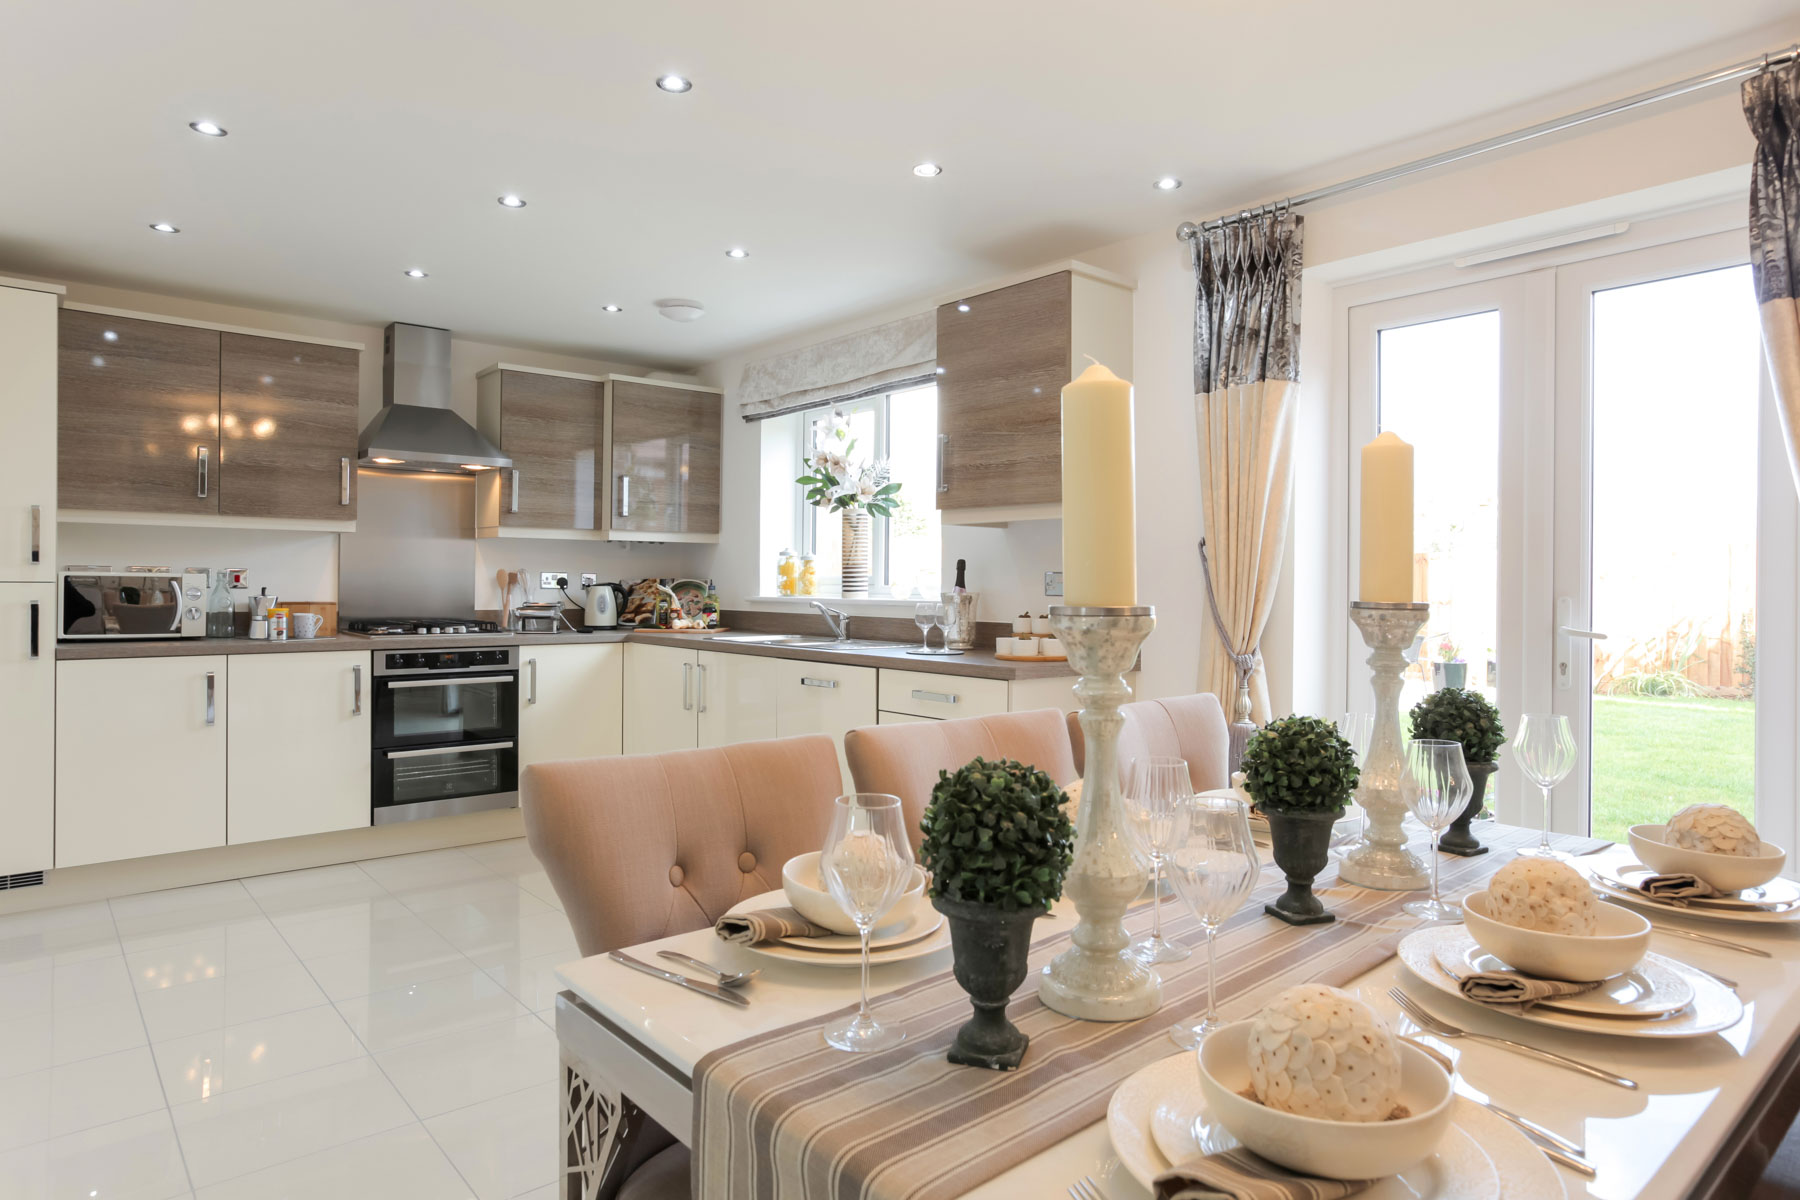 Kingsmead New Homes In Caerphilly Taylor Wimpey